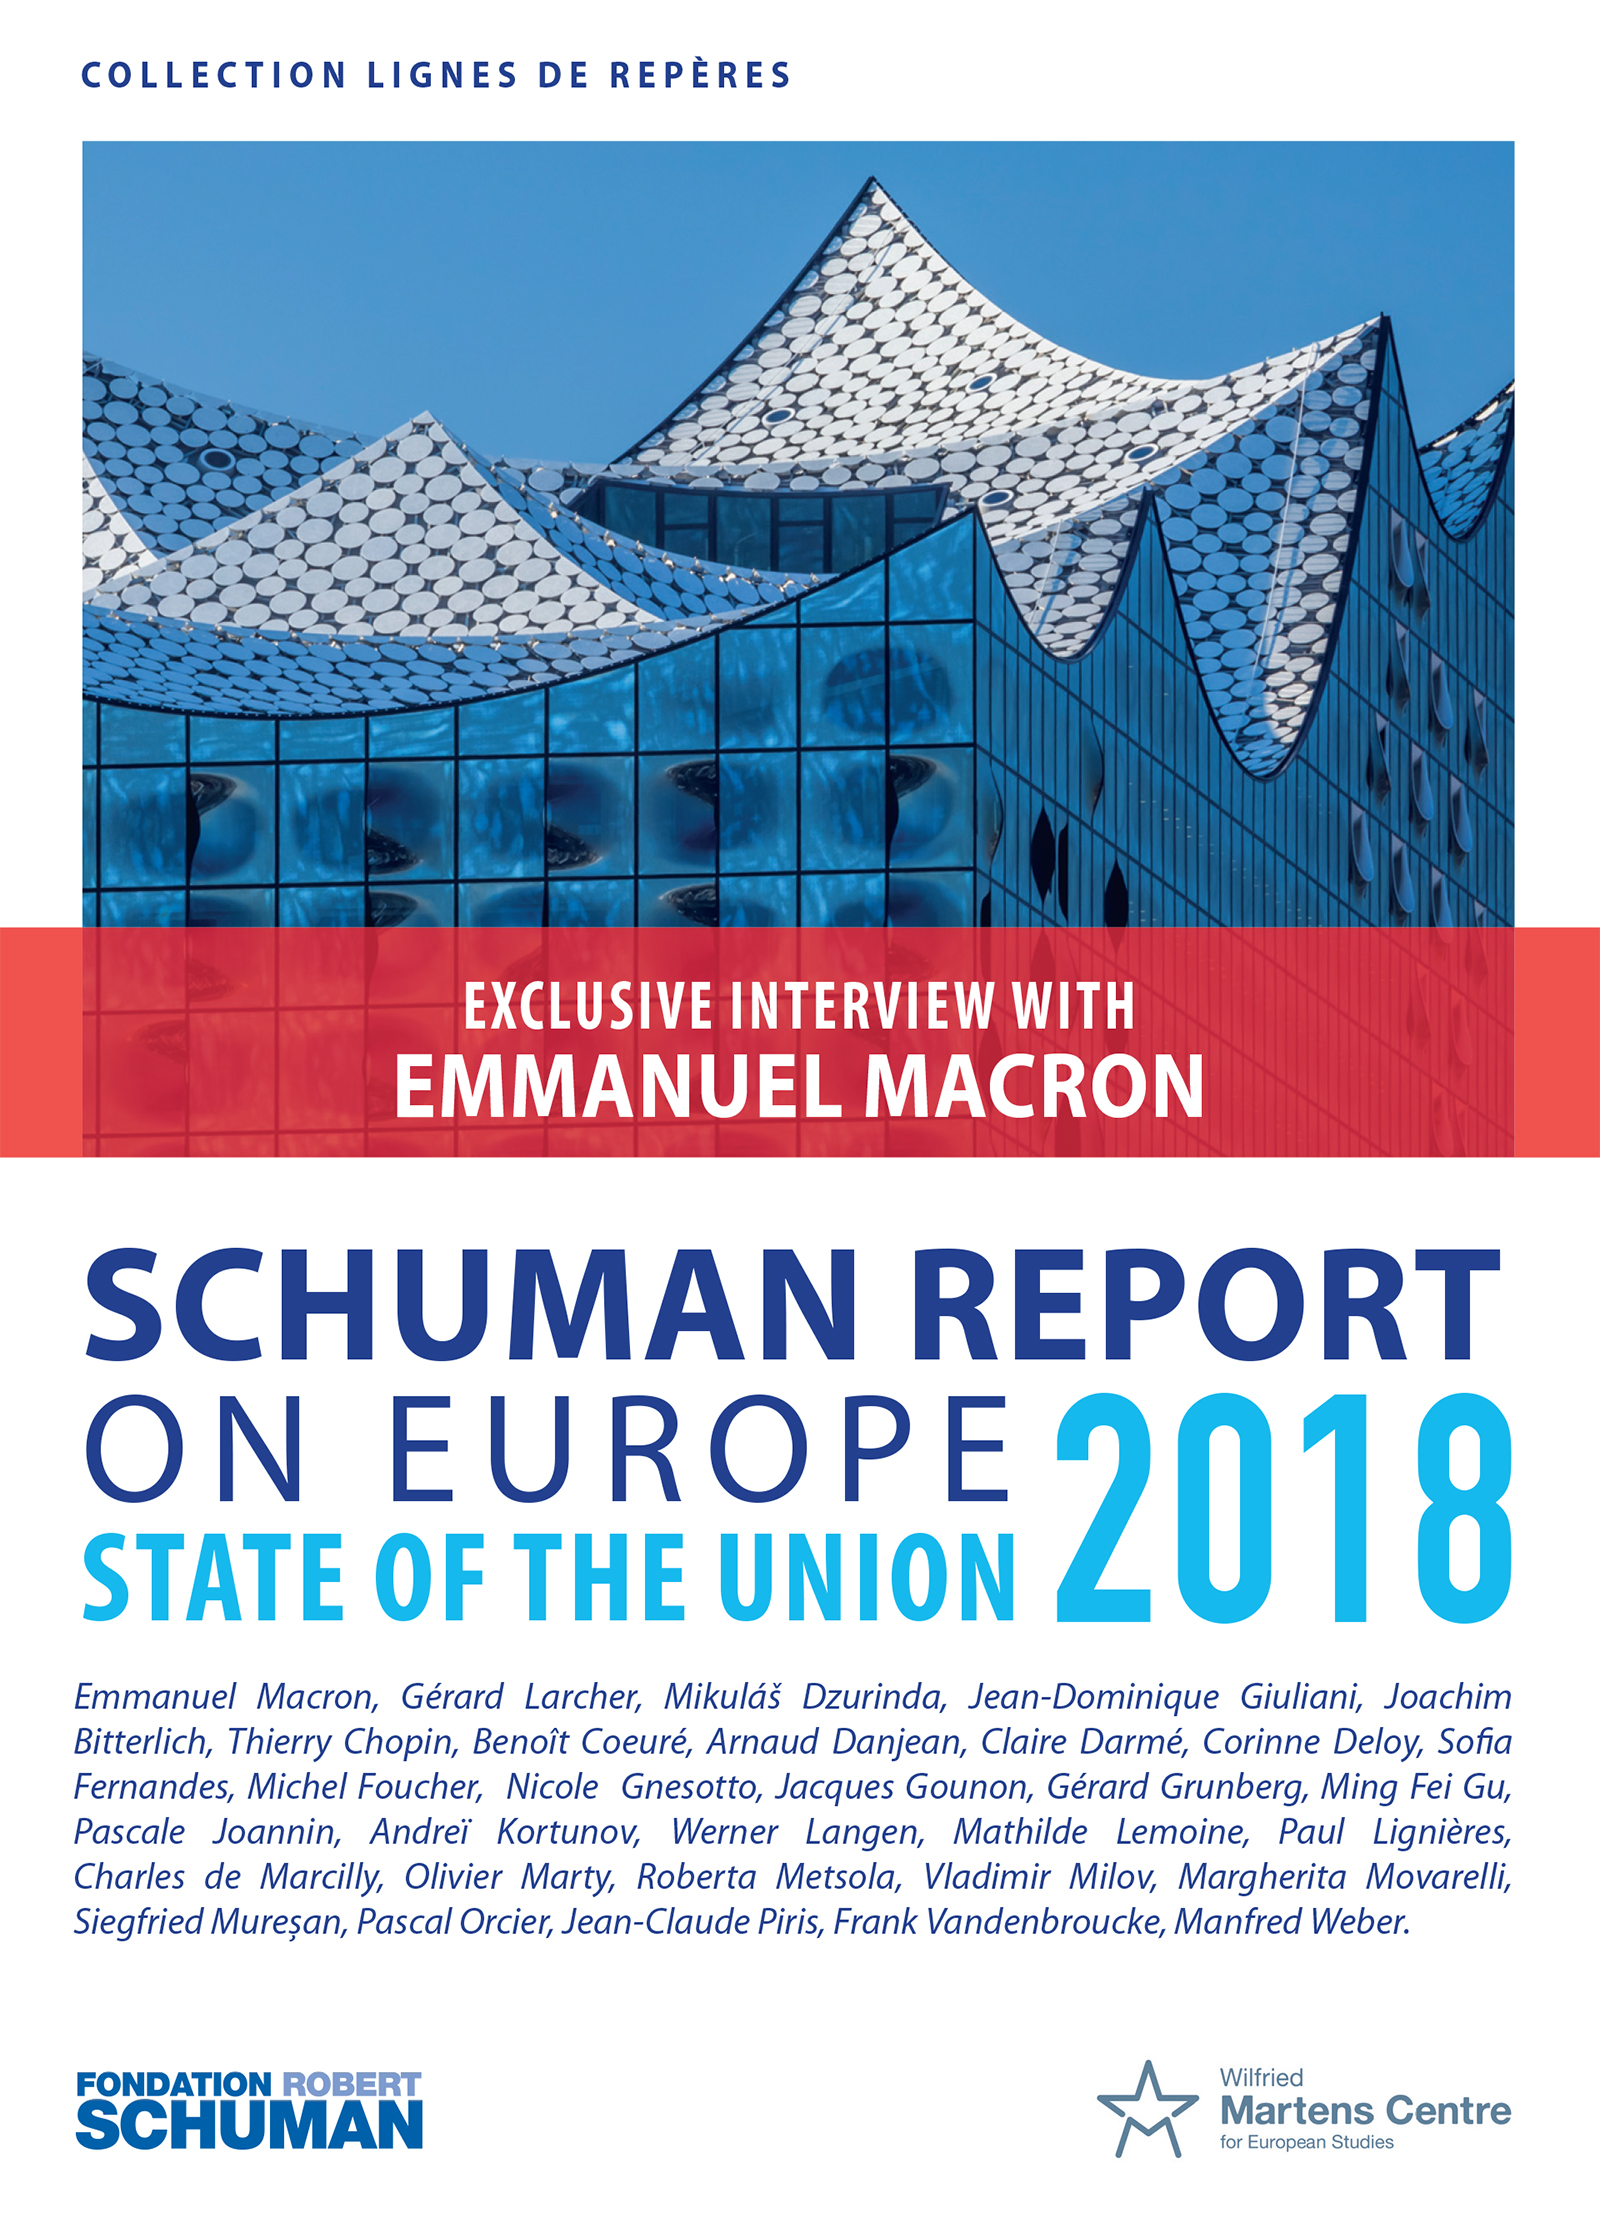 Schuman report on Europe